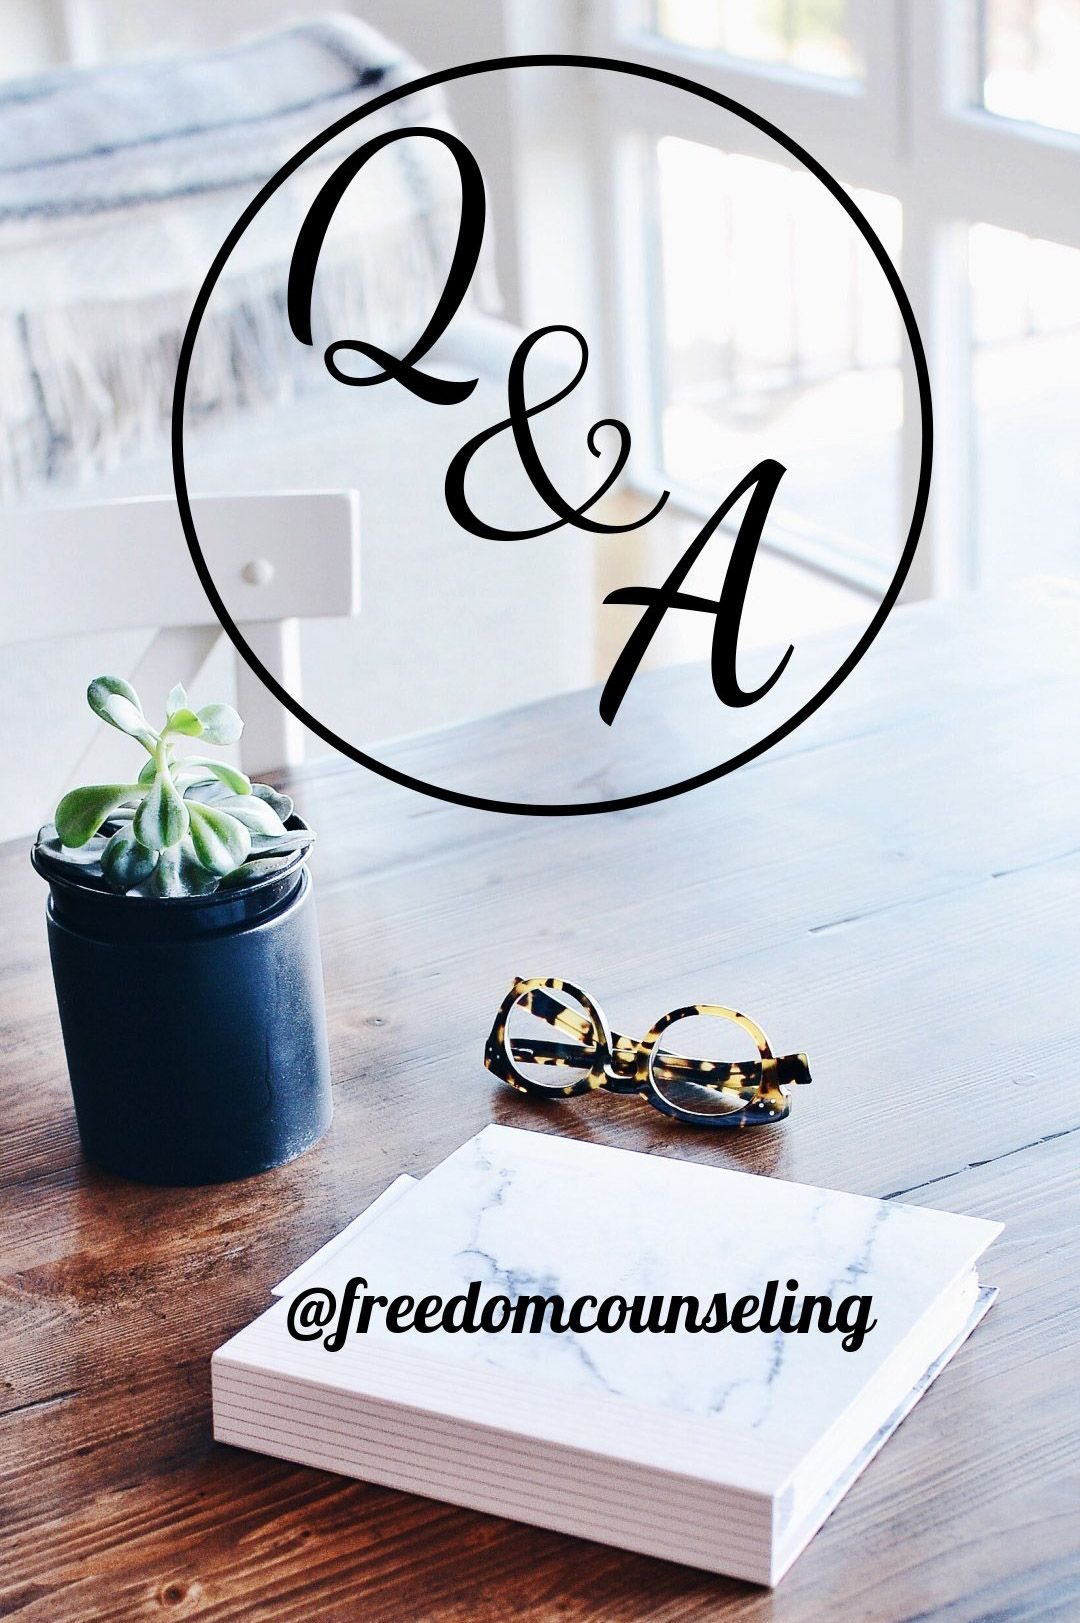 Pin on Counseling, Therapy